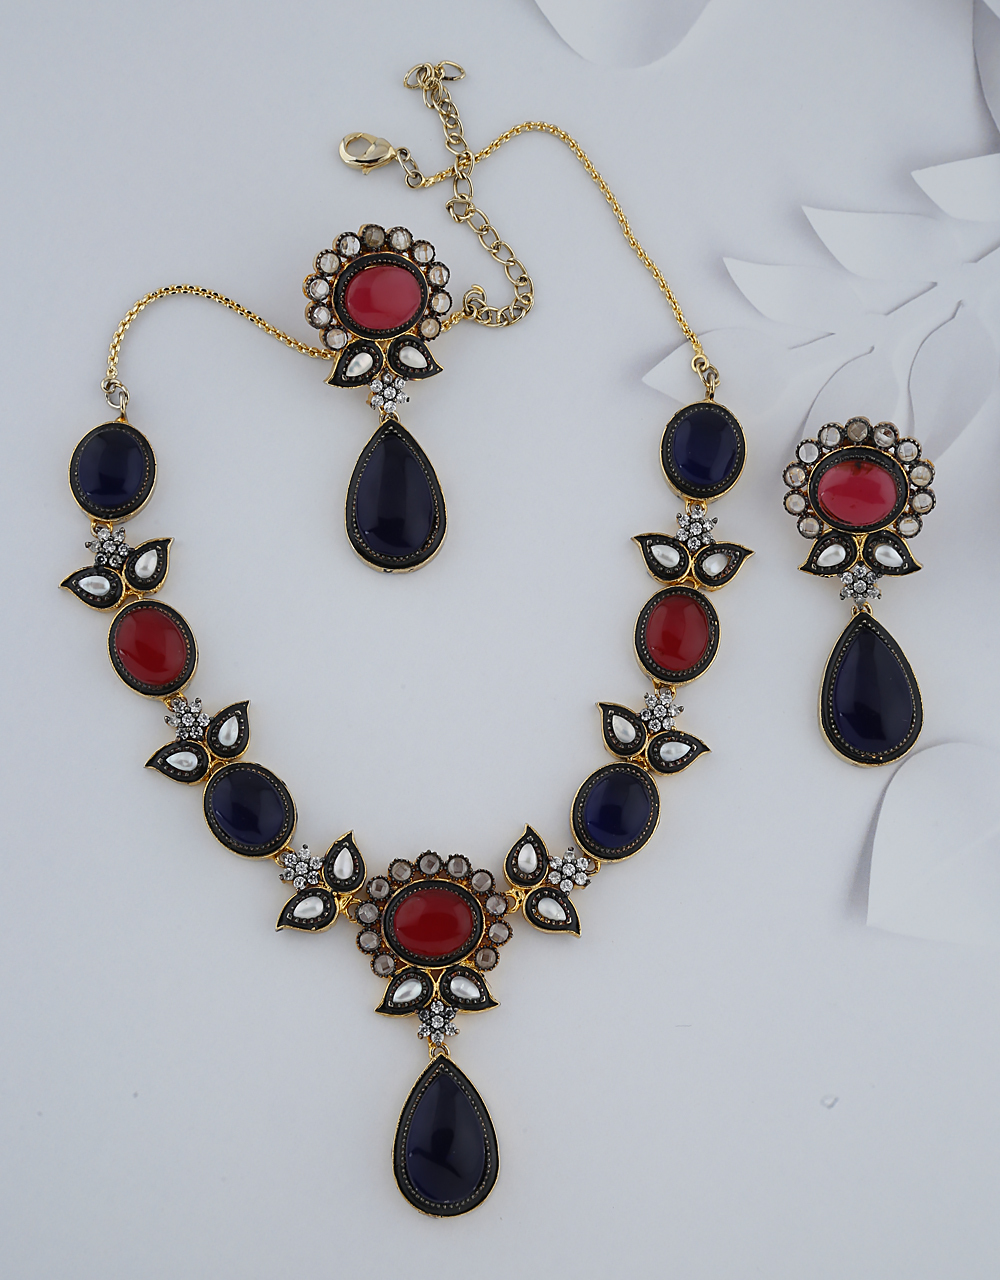 Blue And Pink Stones Studded With Black Metal Finishing Necklace With Earring Set.